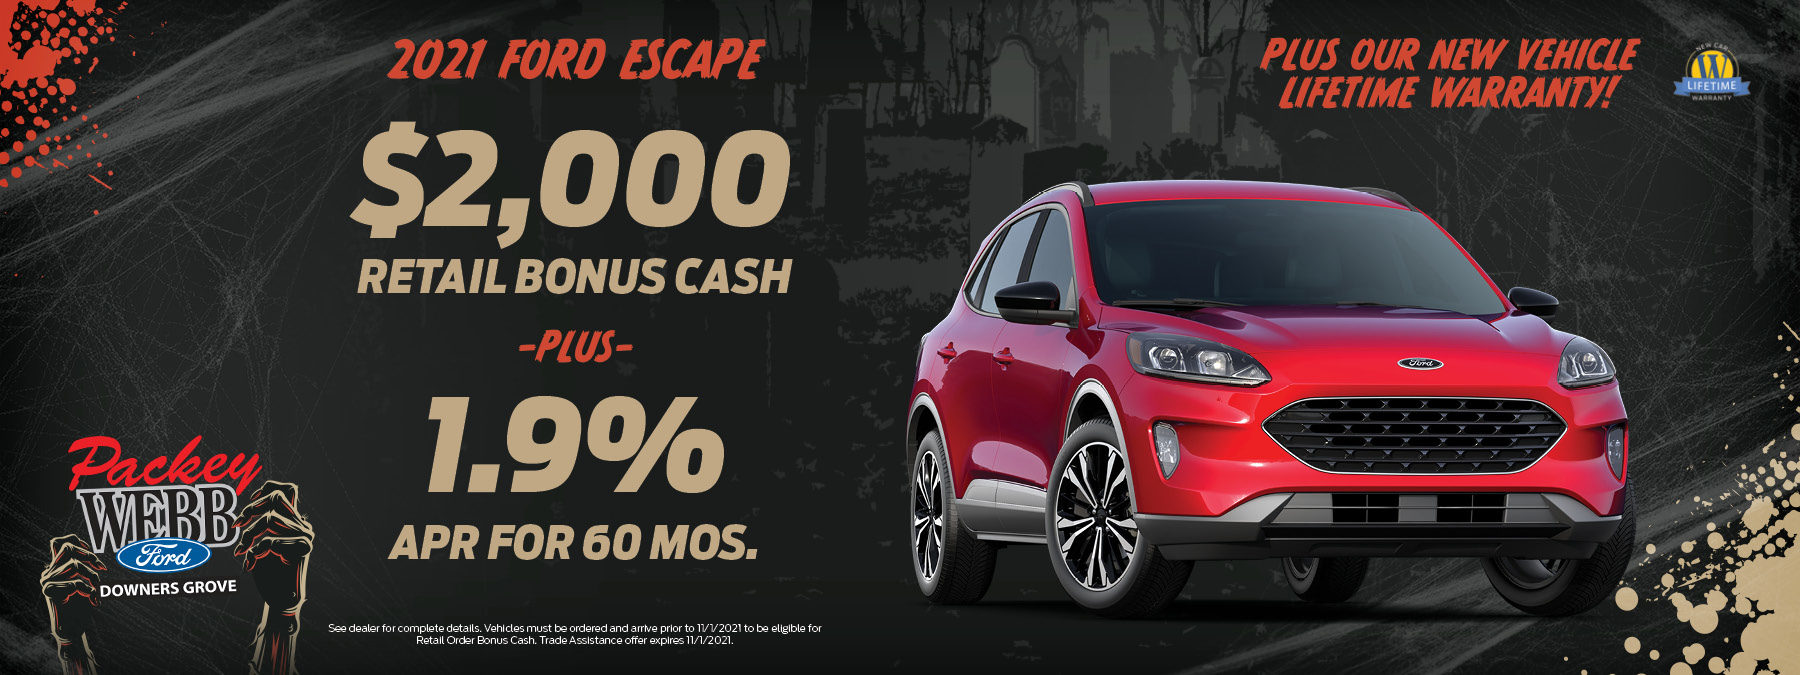 2021 Ford Escape   Packey Webb Ford   Downers Grove, IL